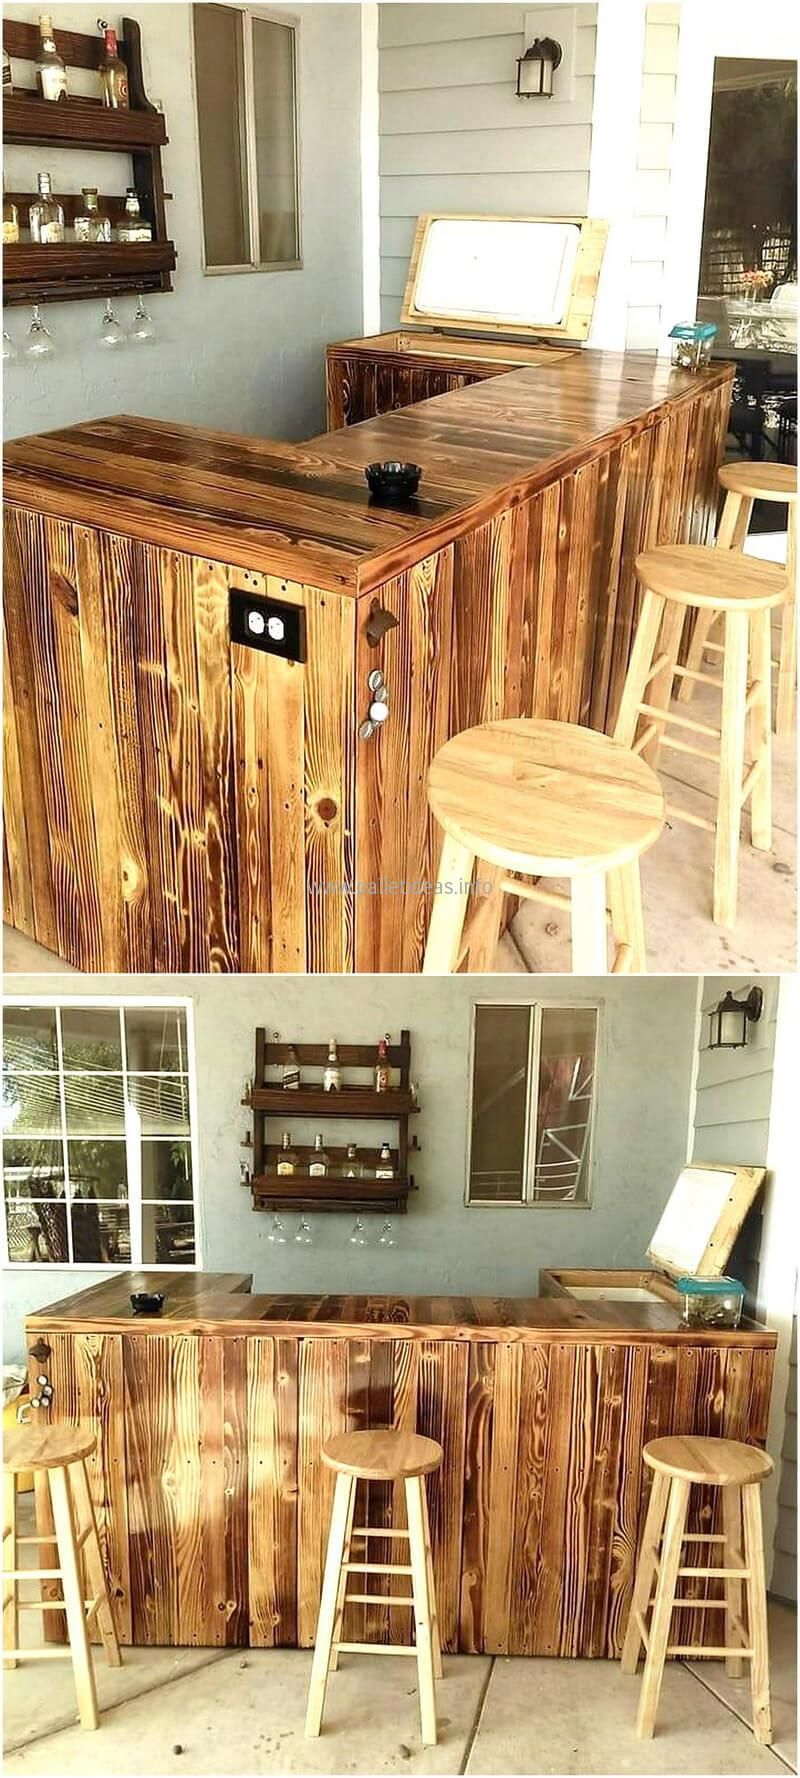 repurposed wood pallet bar | Pallet and recycled wood | Pinterest ...